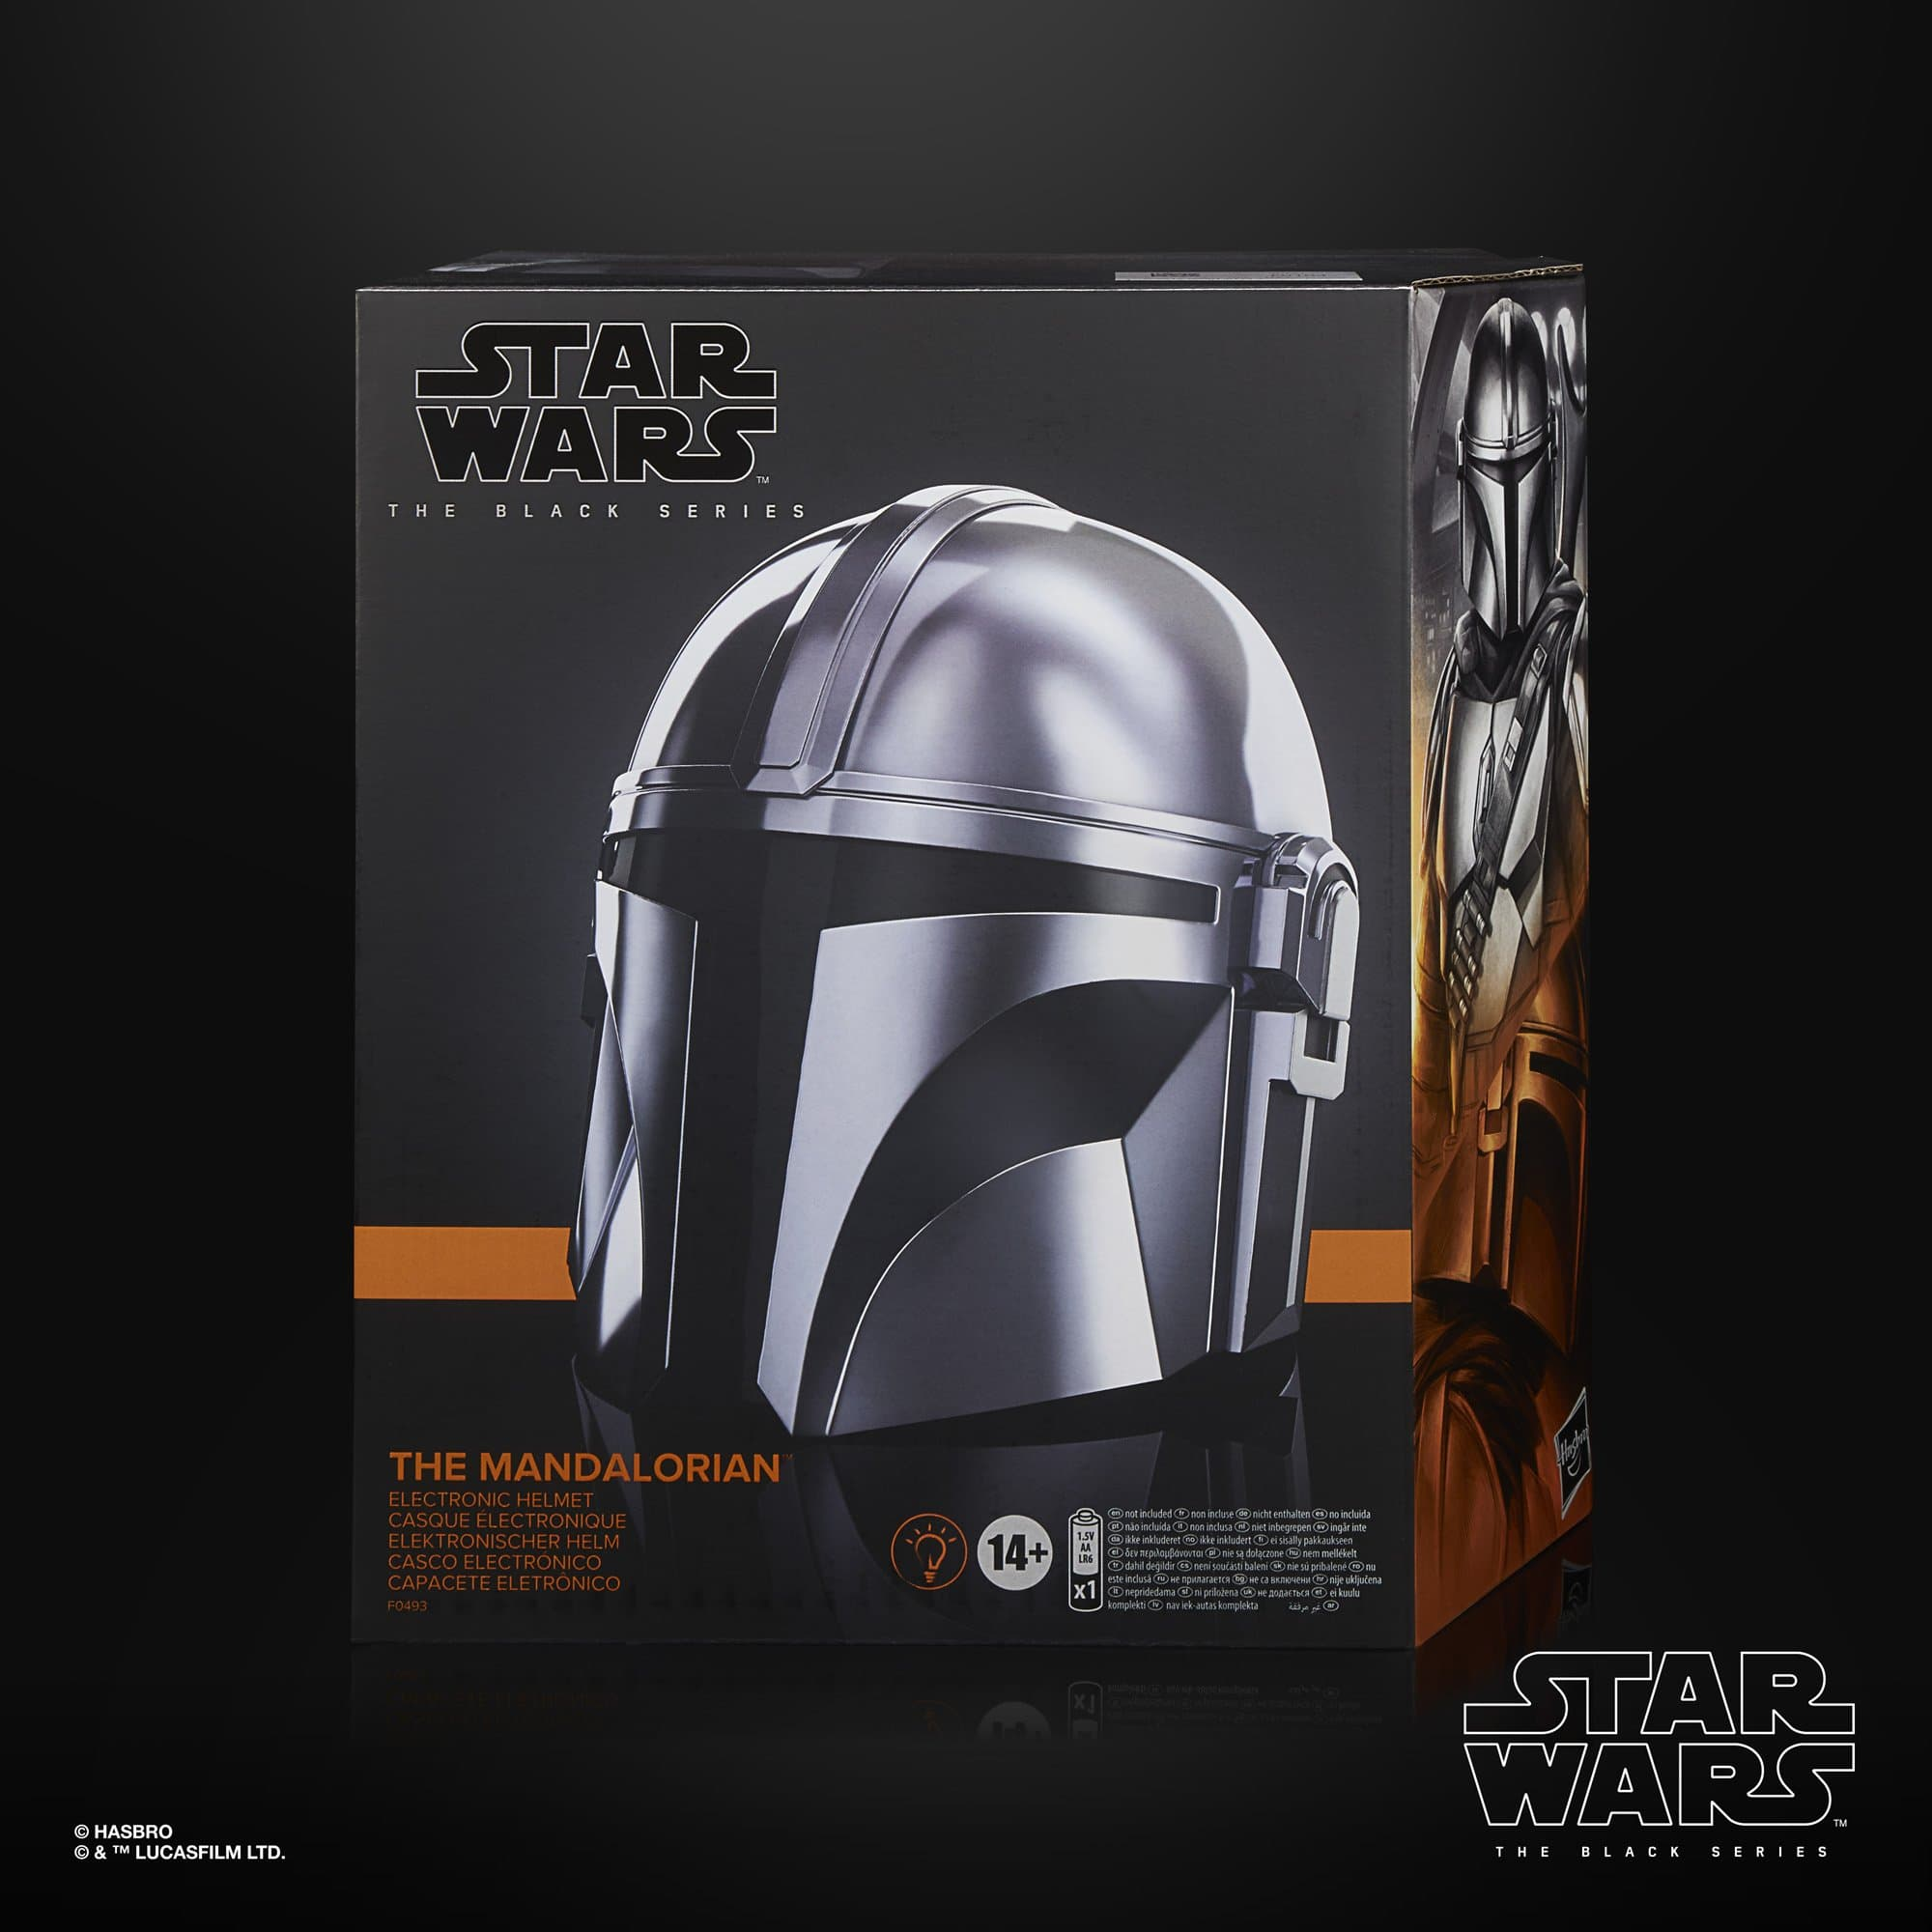 Black Series The Mandalorian Helmet And Other Star Wars Deals You Will Not Want To Miss Today!